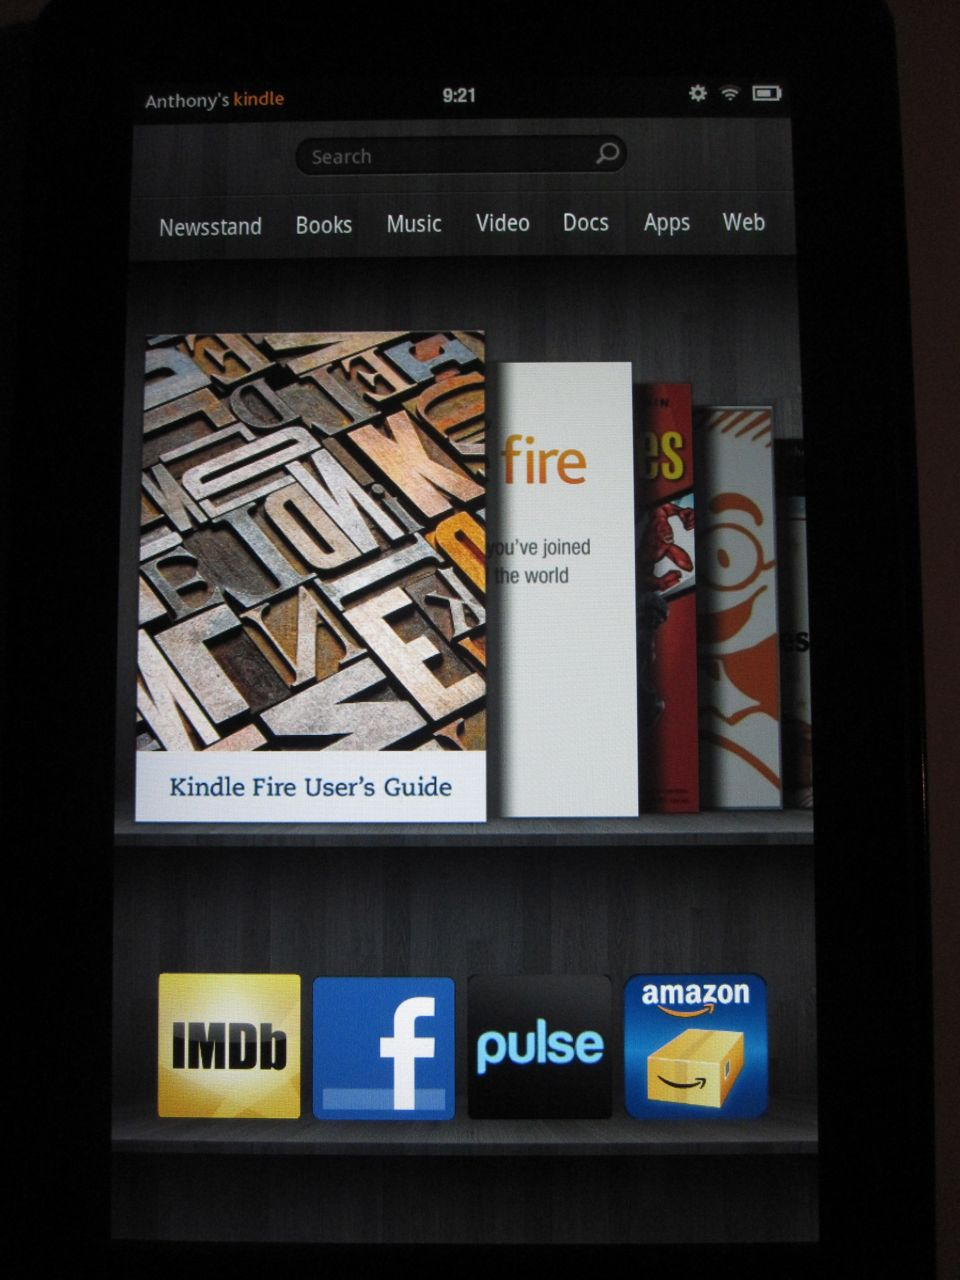 Kindle Fire Homescreen